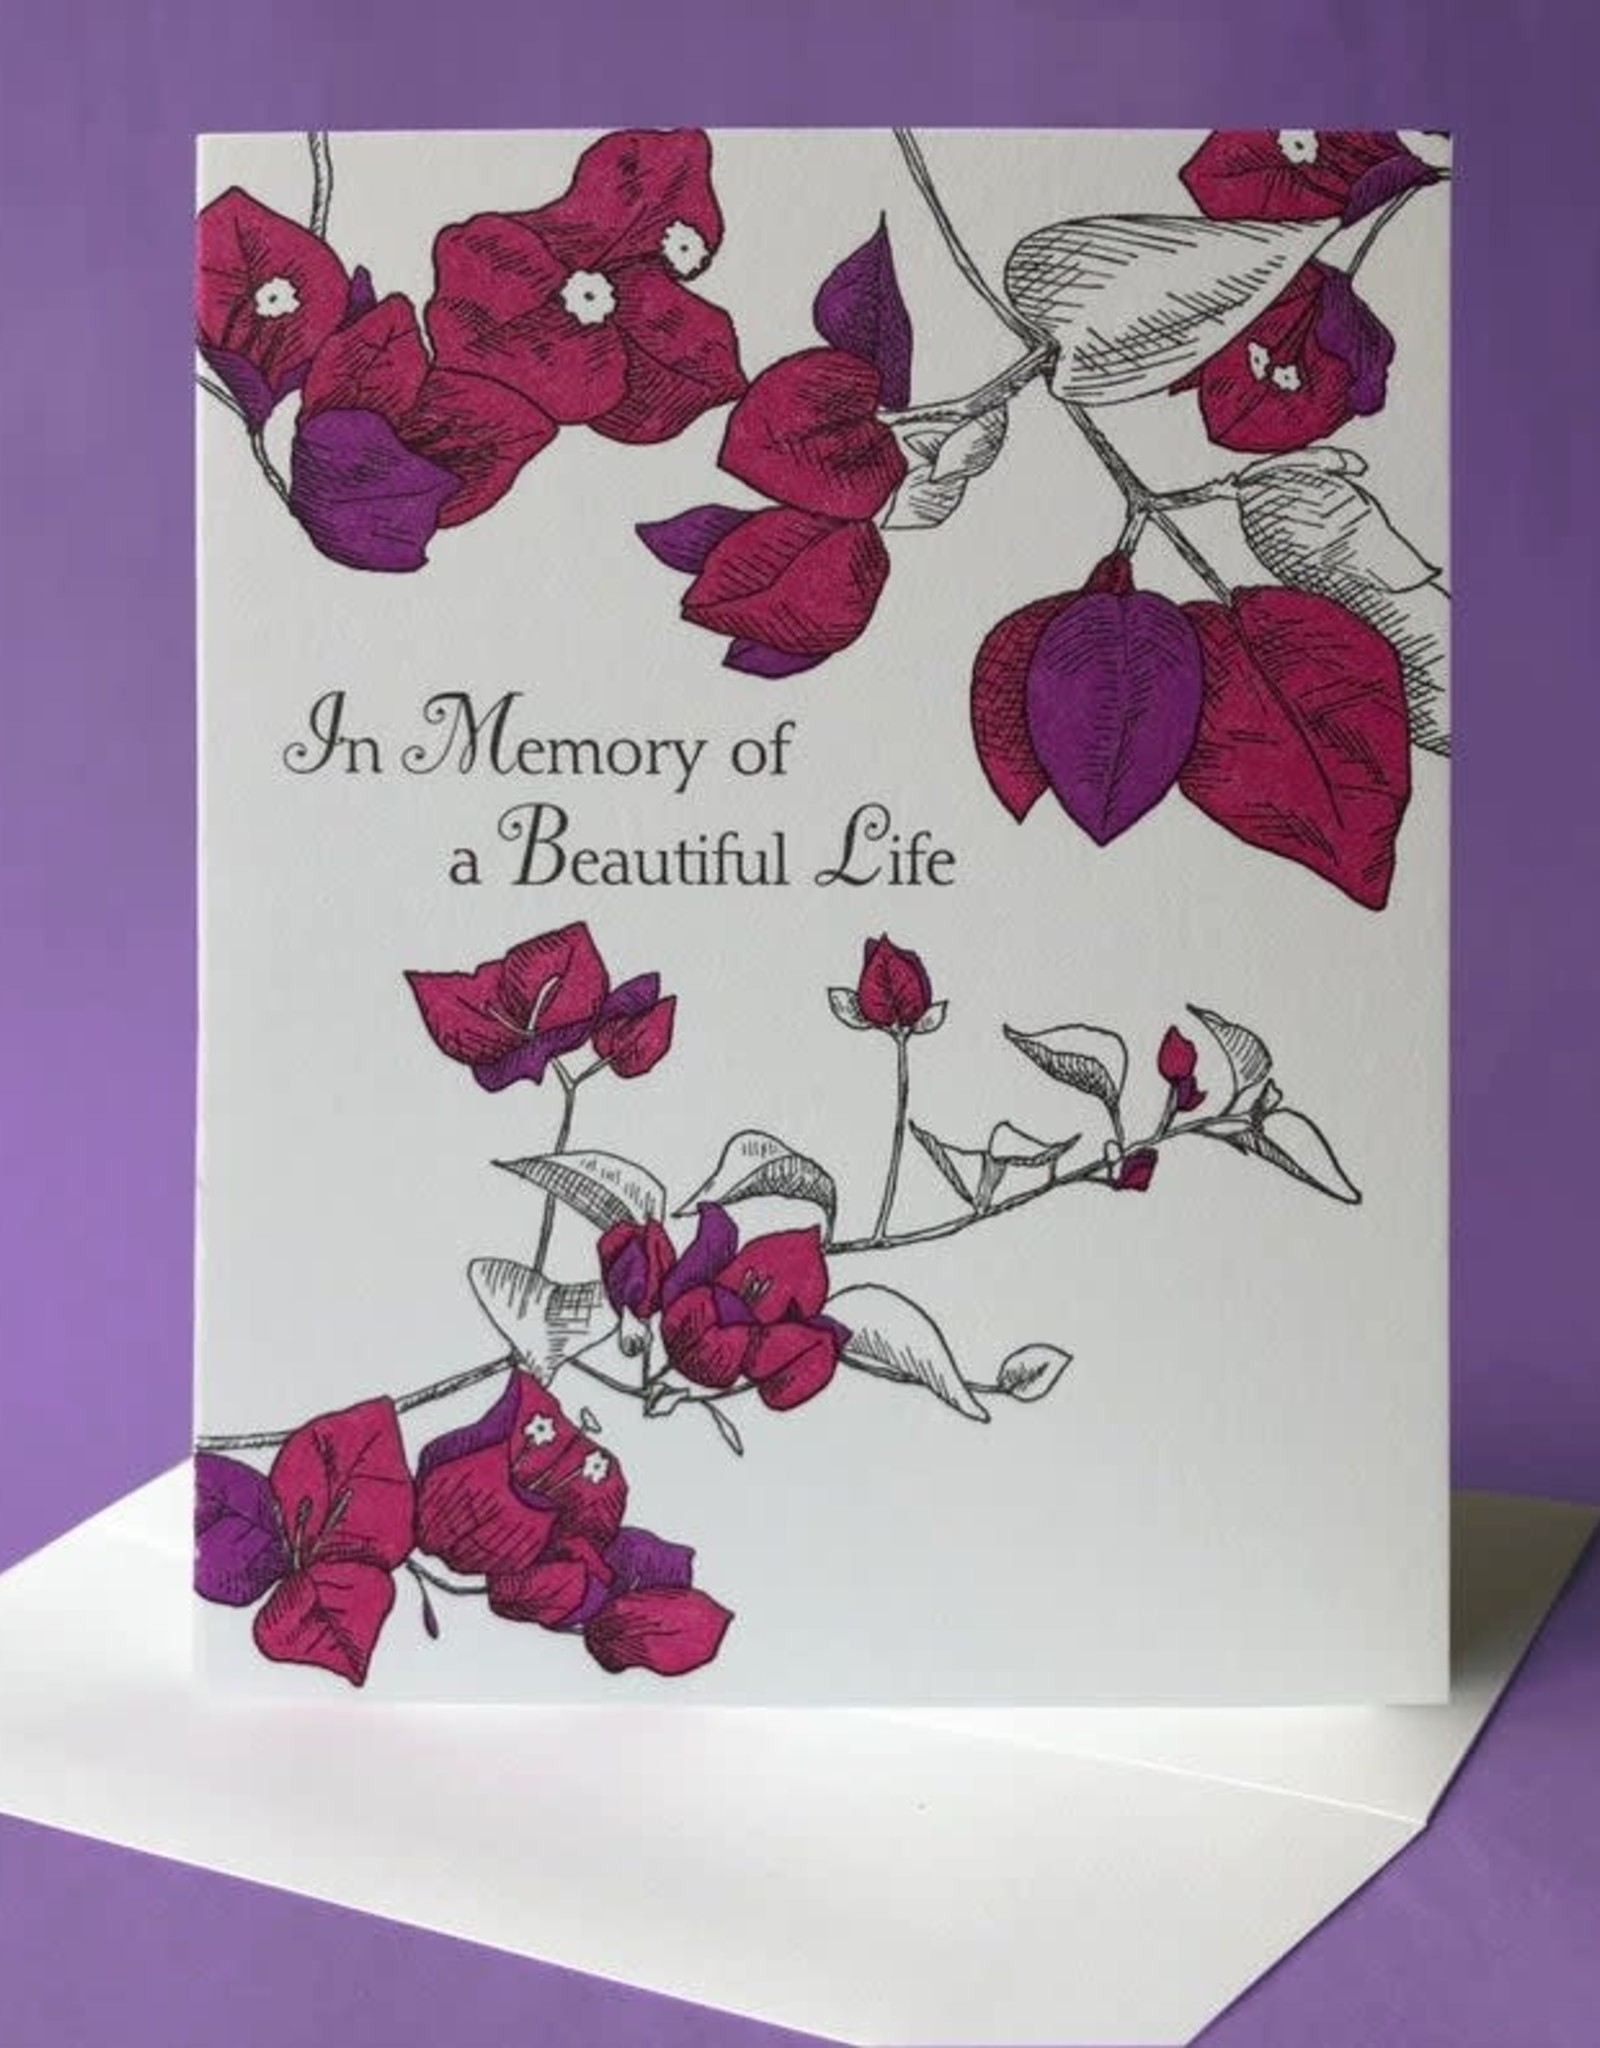 Painted Tongue Studios In Memory of a Beautiful Life (Bougainvillea) Greeting Card